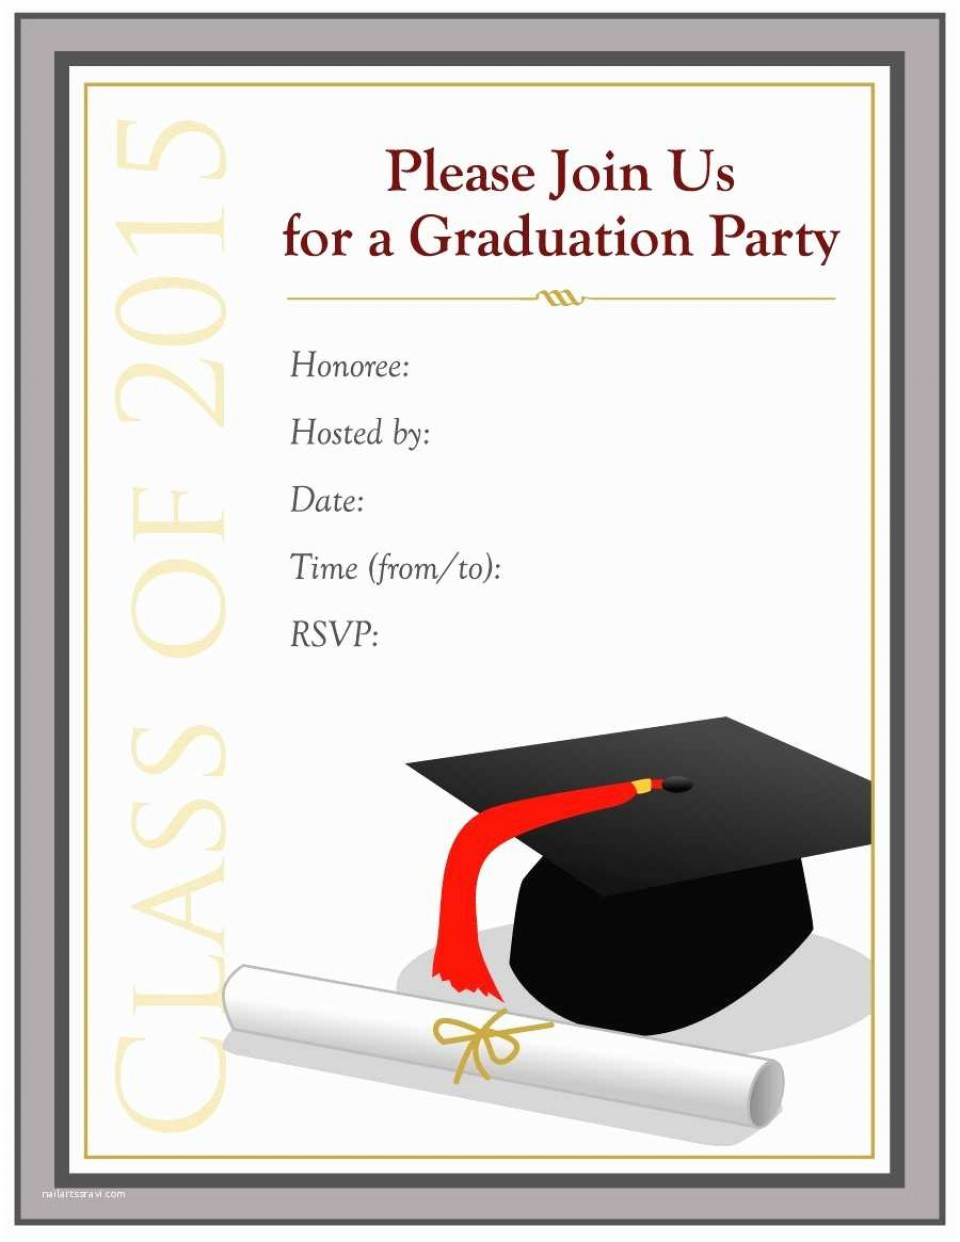 006 Awful College Graduation Invitation Template Sample  Party Free For Word960